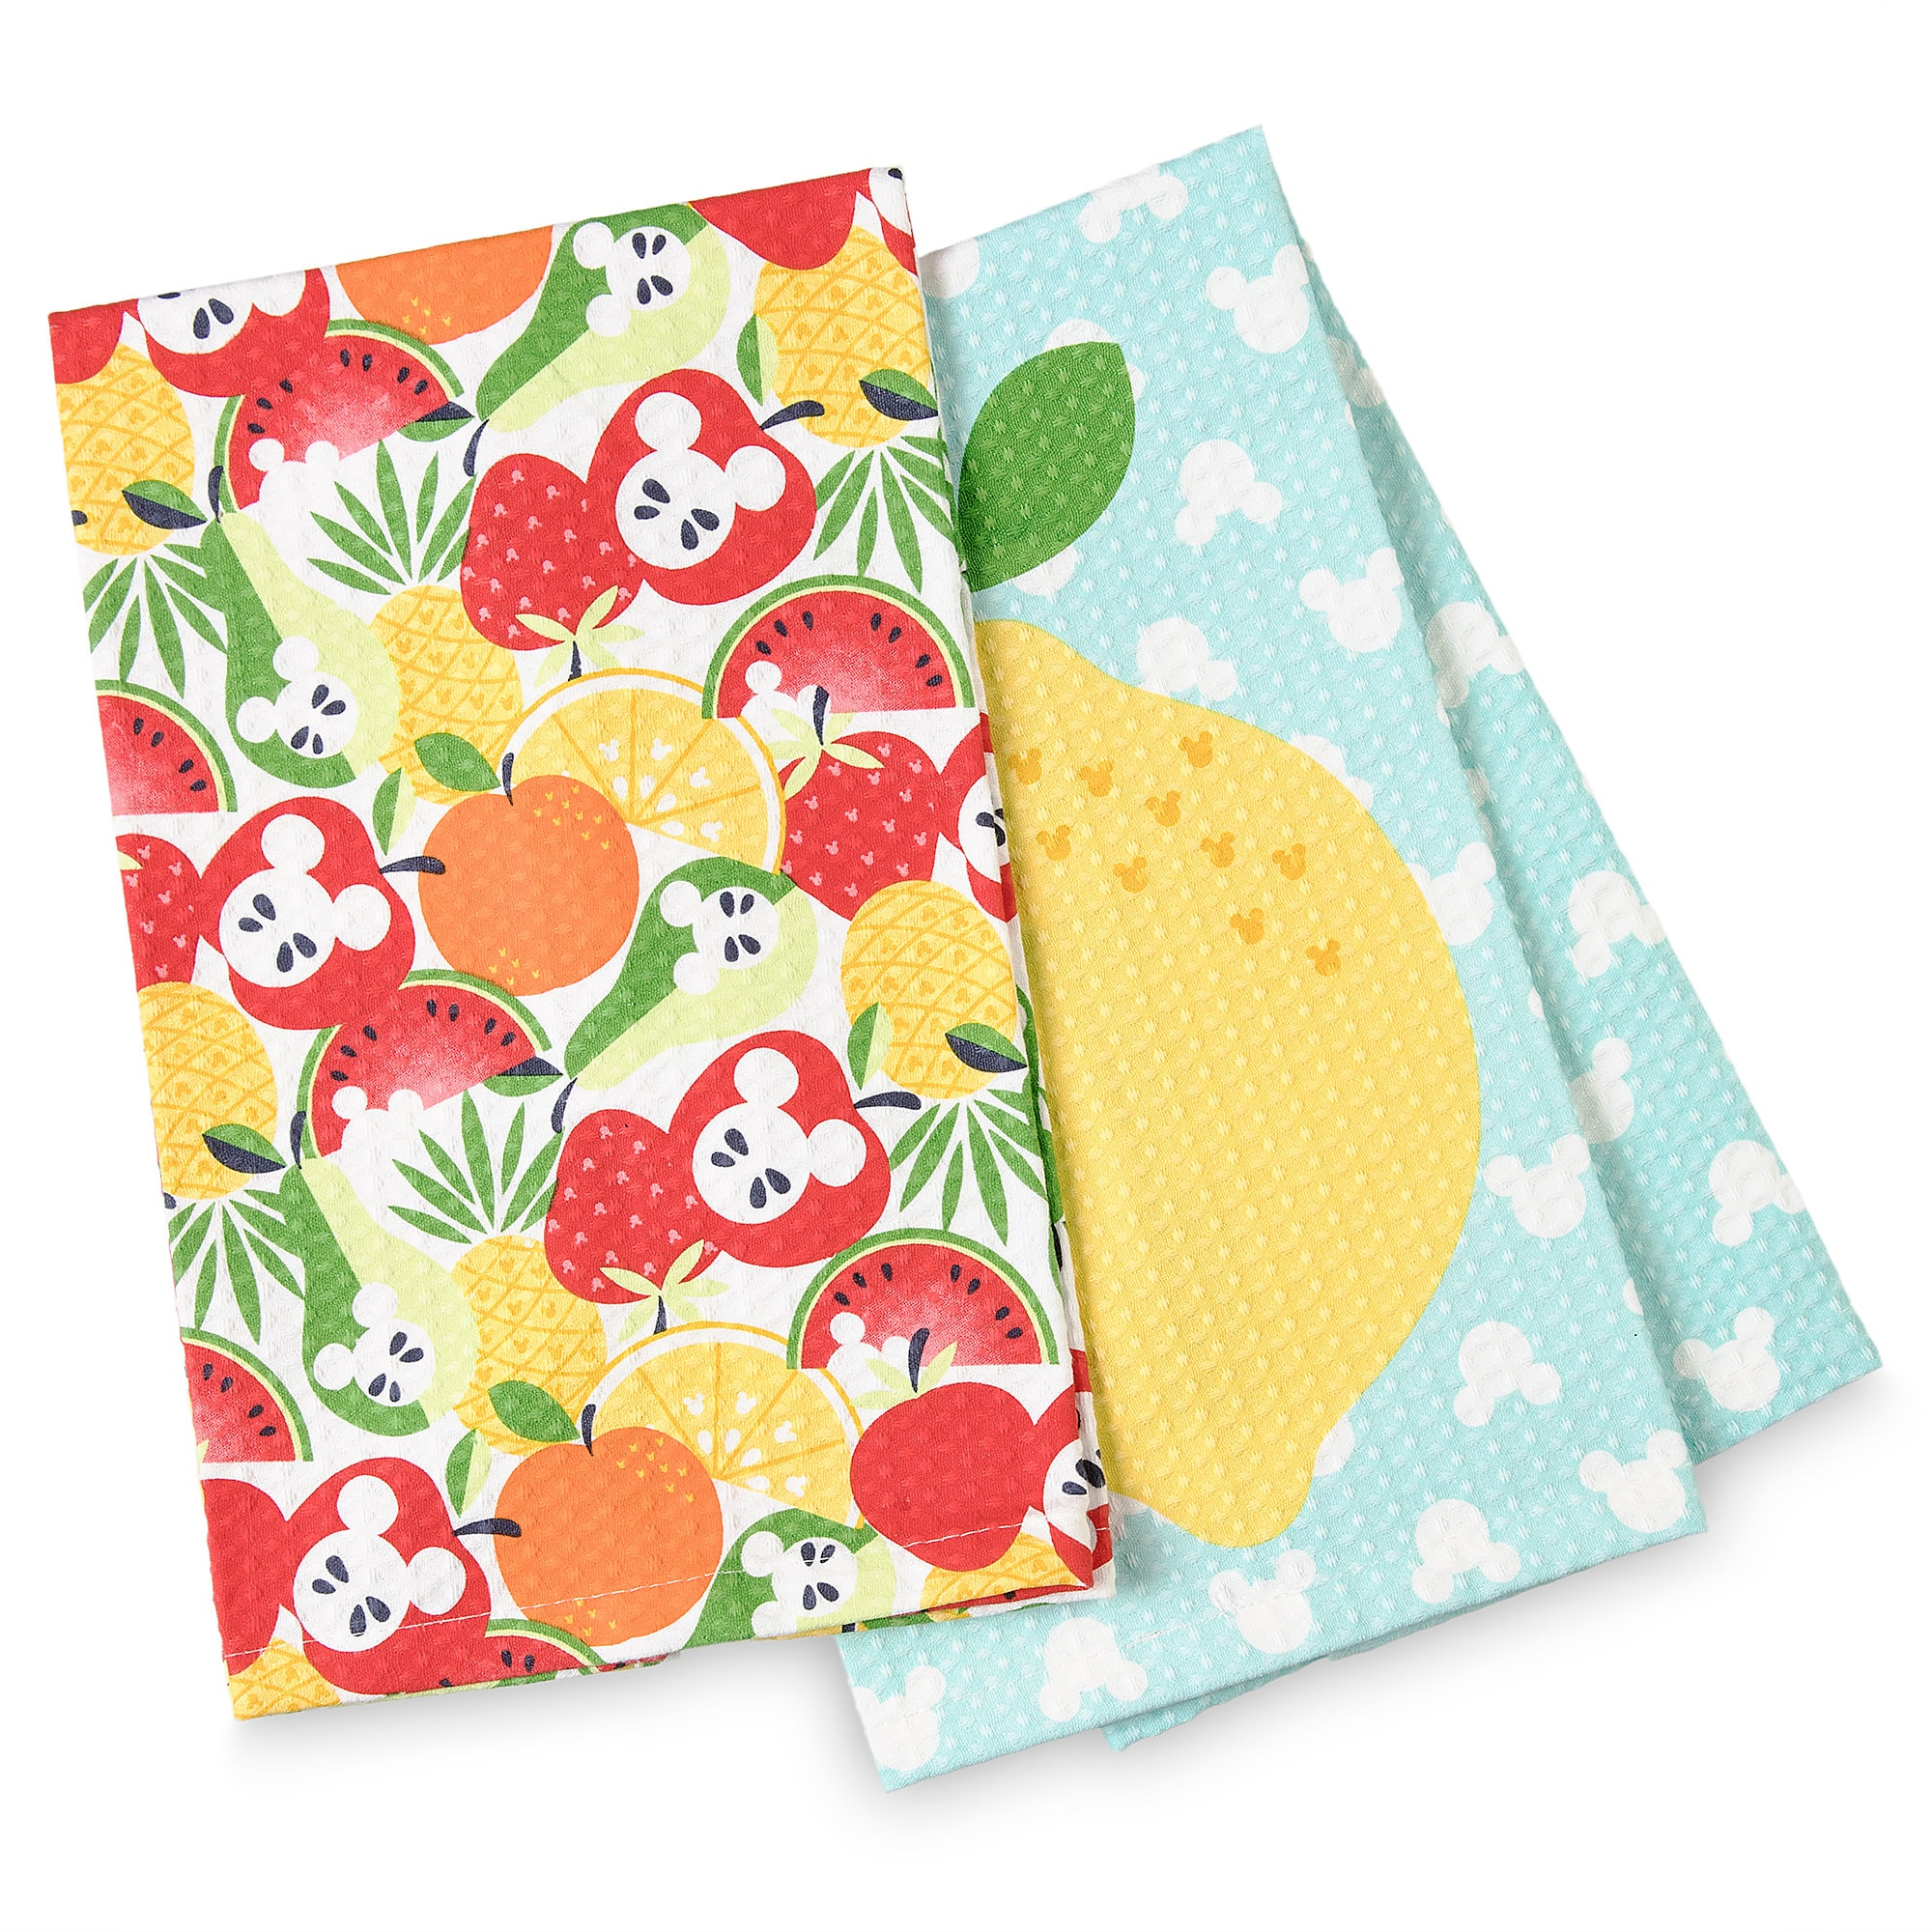 Mickey Mouse Kitchen Towels - Summer Fun | shopDisney